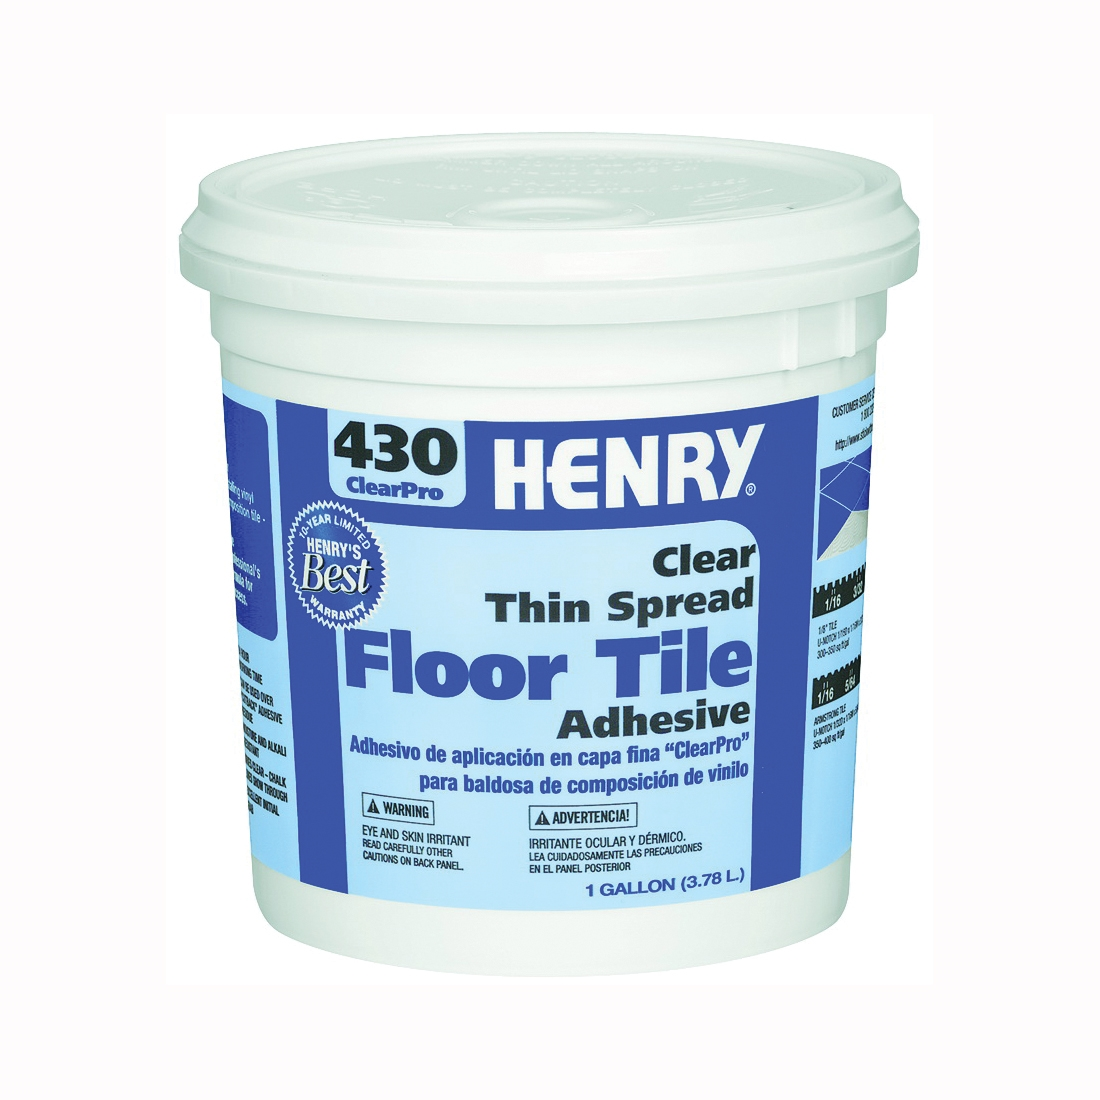 Picture of HENRY 430 ClearPro 12098 Floor Adhesive, Paste, Mild, Clear, 1 gal Package, Pail